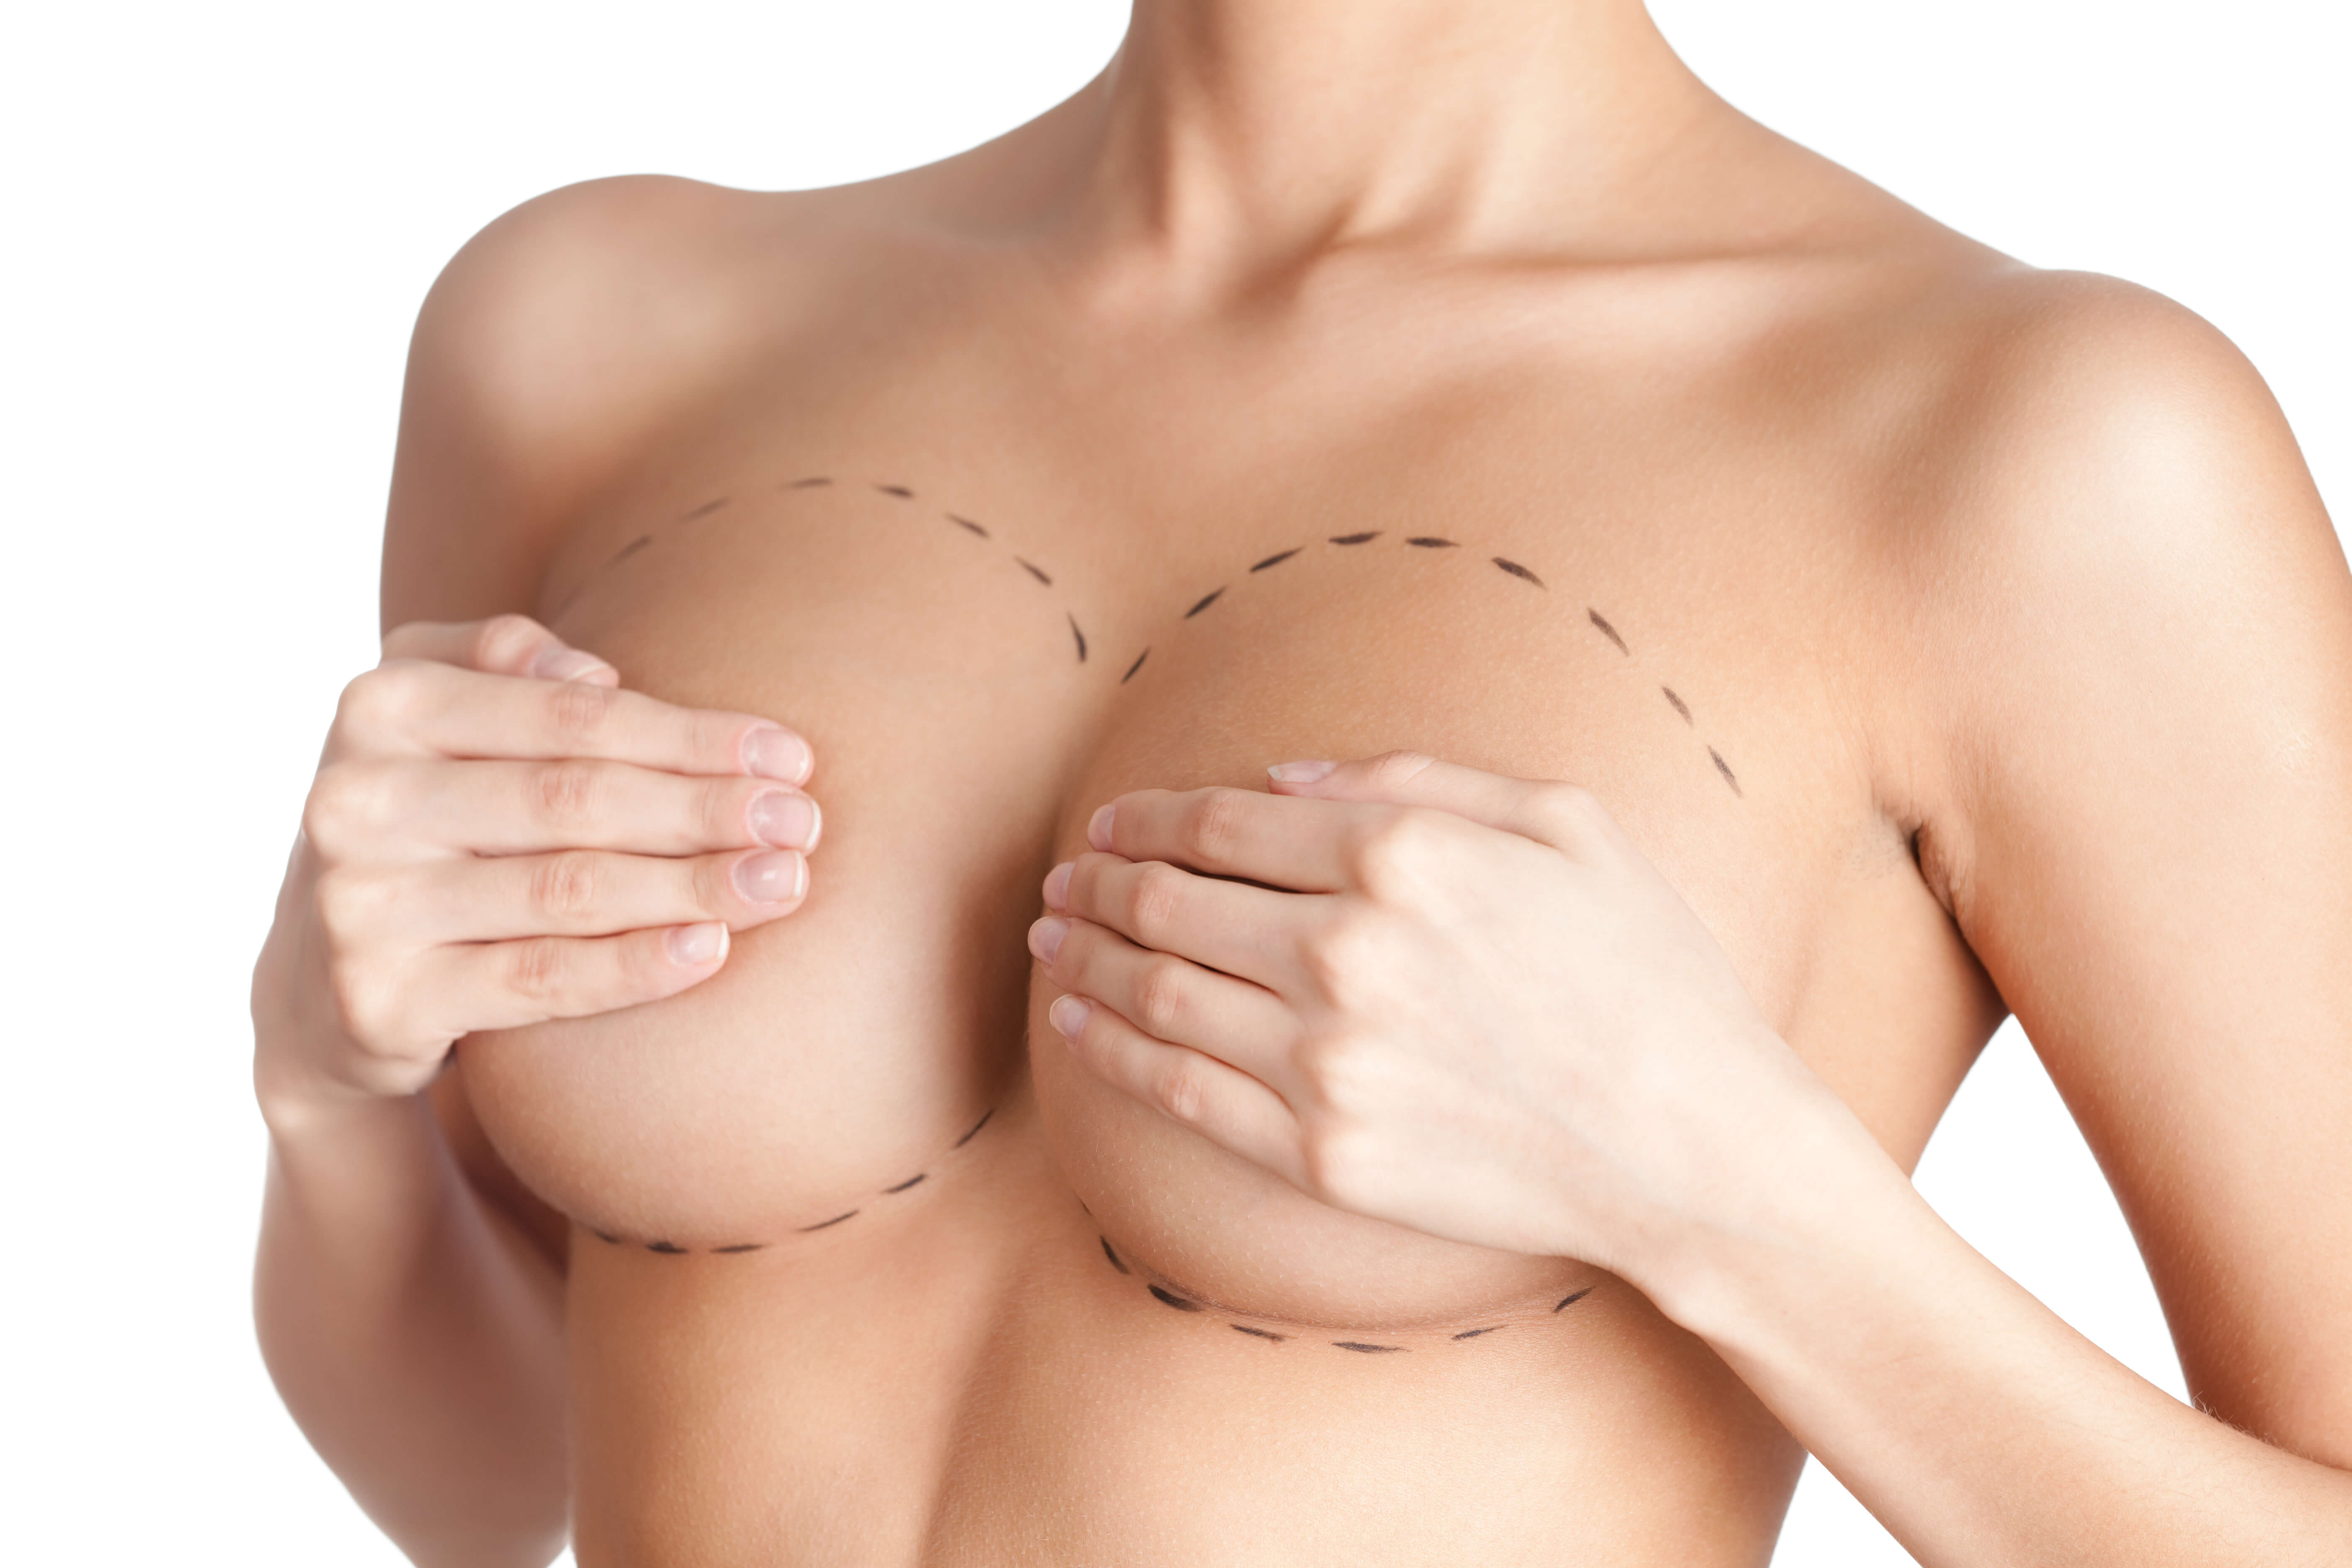 ideal breast implants west palm beach Florida